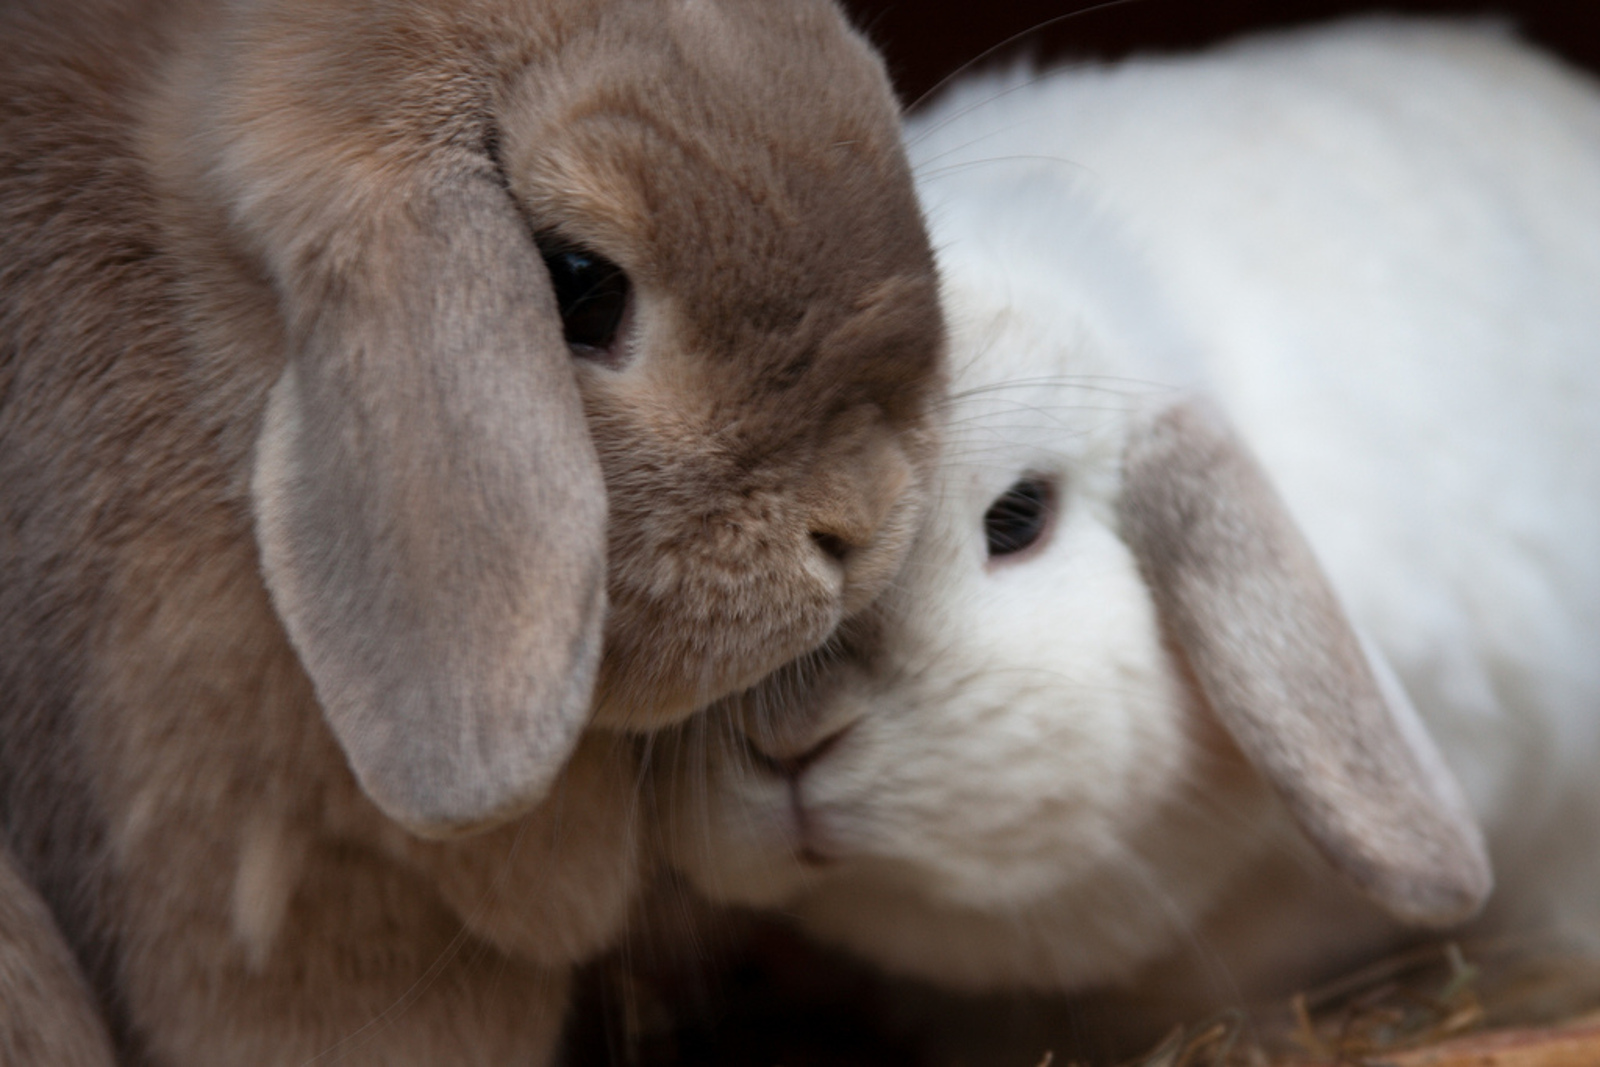 5 Cosmetic Brands Cruelty-Free Consumer Should Avoid